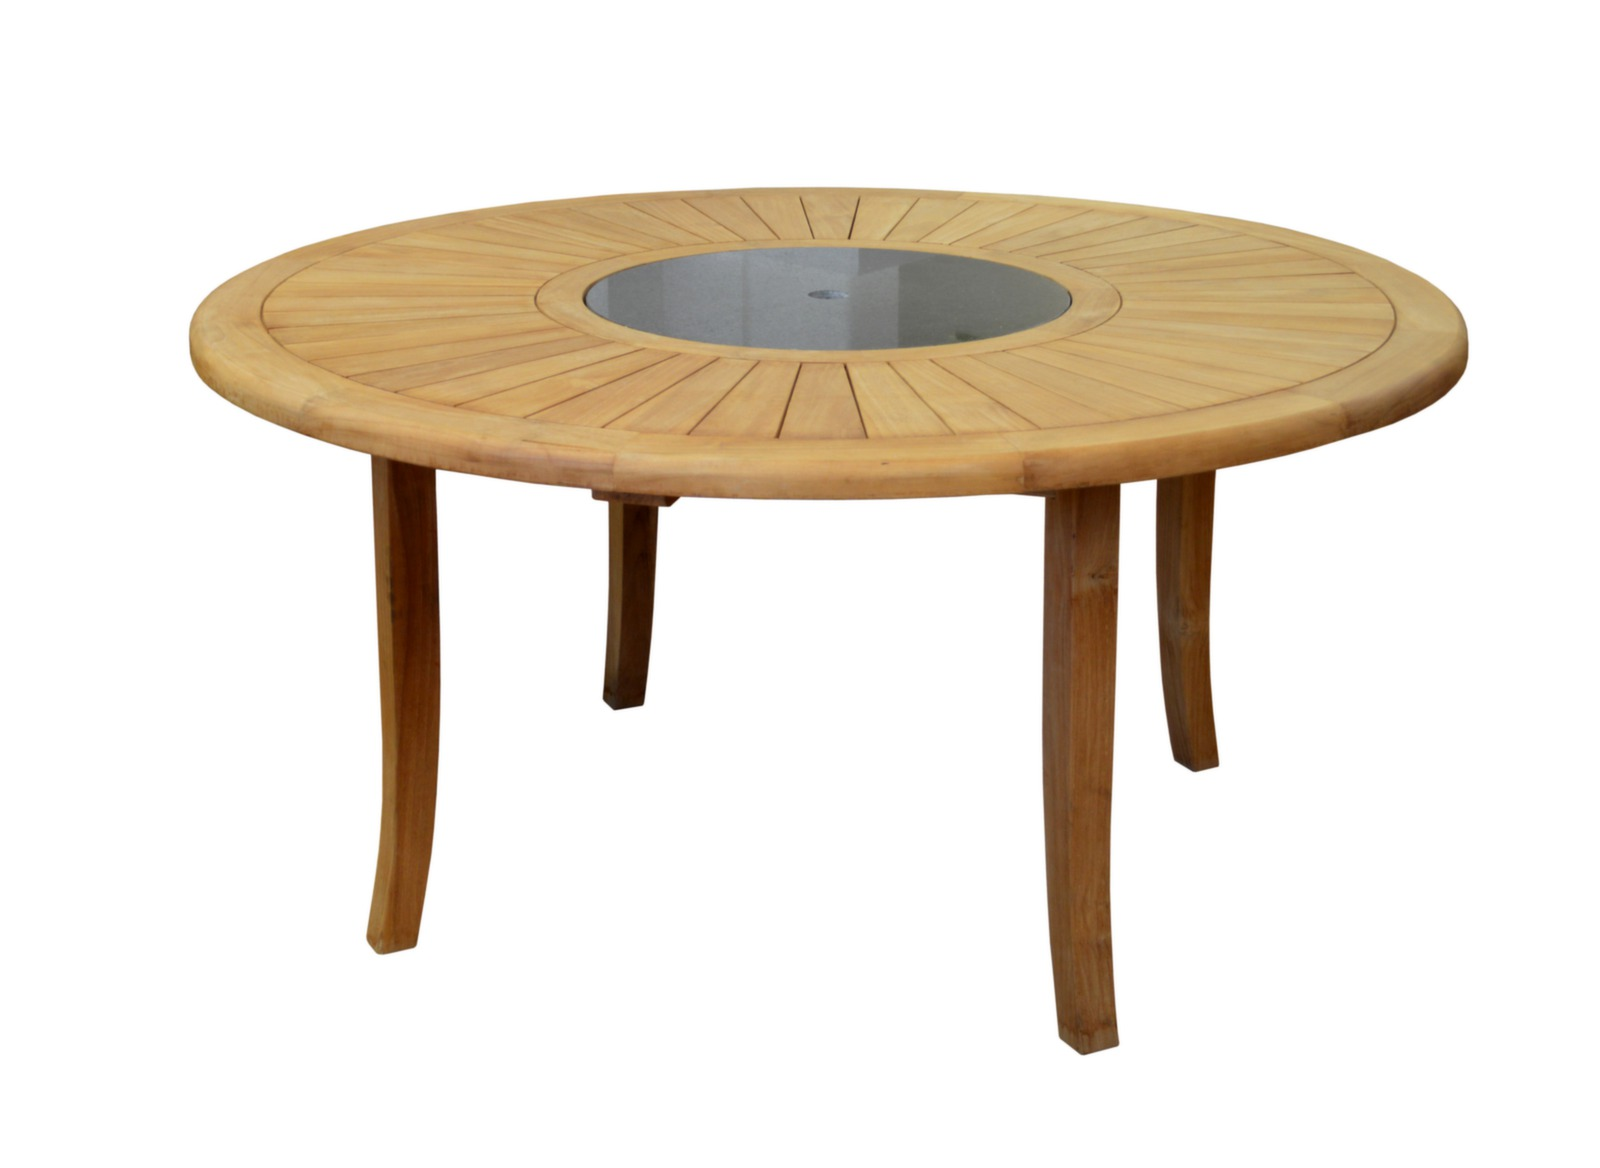 Table de jardin brehat 155 cm mobilier de jardin for Plateau table exterieur